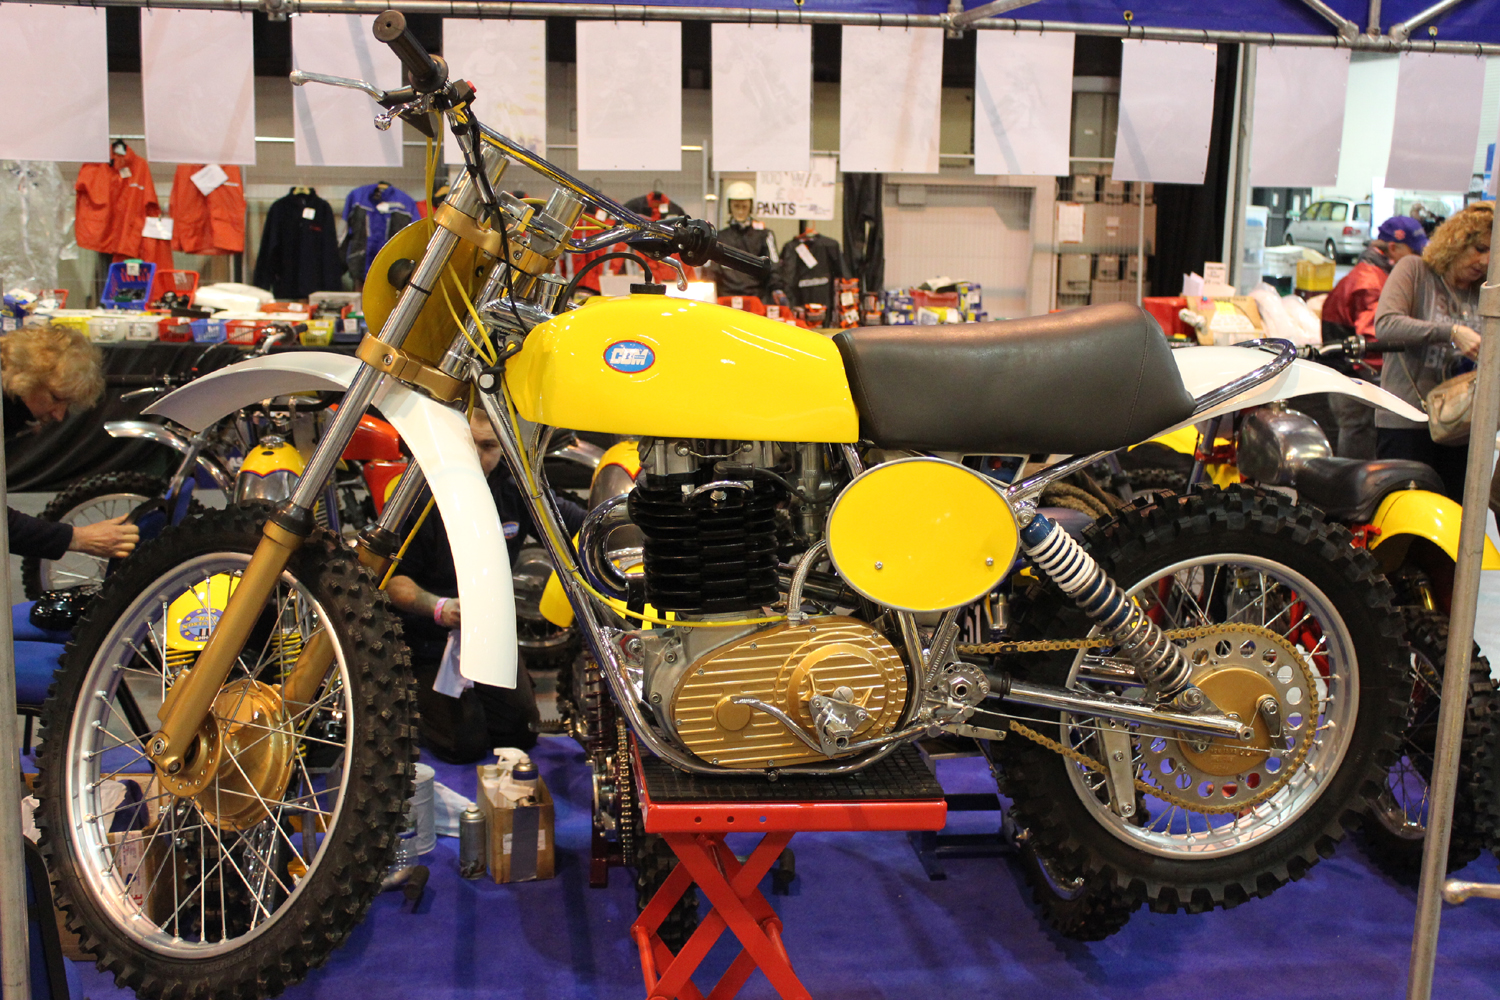 classicdirtbikerider.com-photo by Mr J-2015 Telford classic dirt bike show-CCM SCRAMBLER